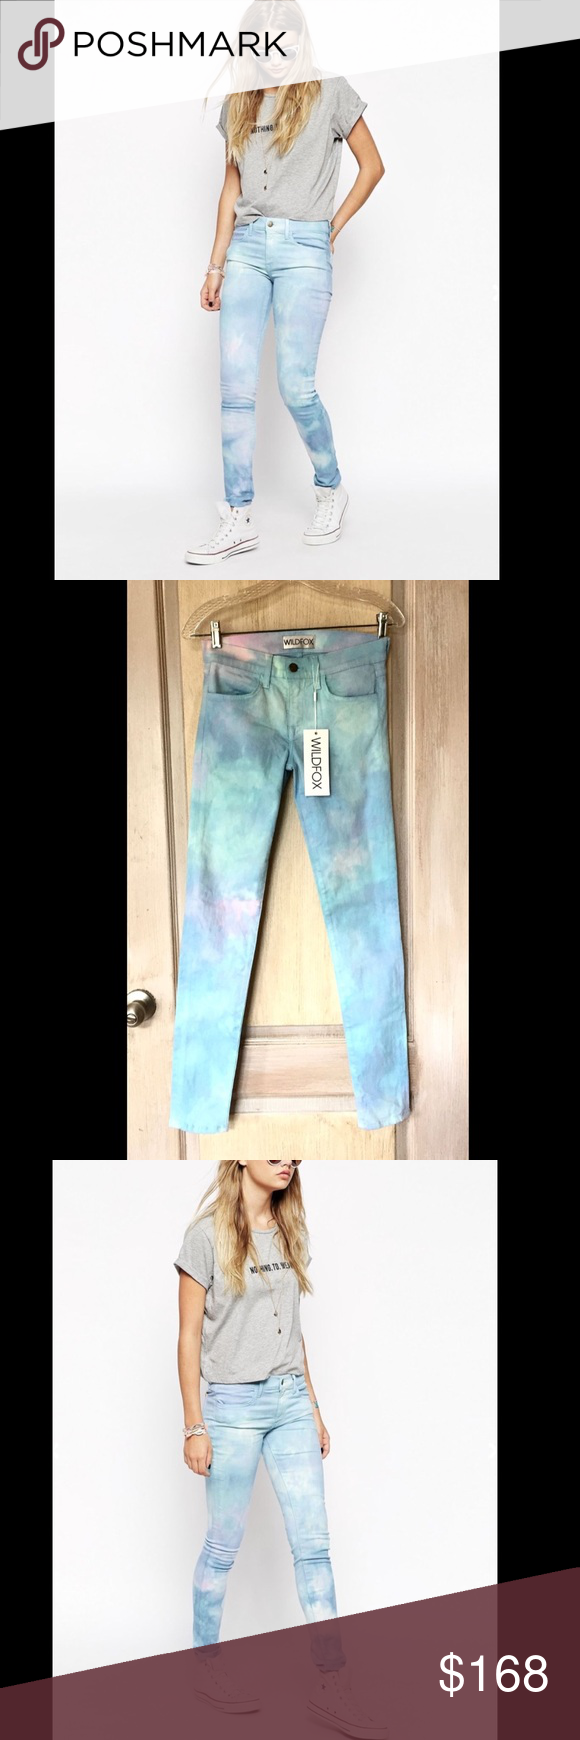 "WILDFOX blue aqua pink Stretch Skinny Jeans 25 WILDFOX blue aqua pink Tie Dye Low Rise Daydream Marianne Stretch Skinny Jeans classic contoured mid rise waistband for a perfect fit each pair is hand dyed ensuring that each pair is unique  4 pocket design with zipper & button closure skinny tapered leg for longer leaner look  New With Tags  *  Size:  25 retail price:  $192.00  91.5% cotton * 6% polyester * 2.5% spandex machine wash cold Made in the USA  measures: 27"" around waist relaxed 8""…"